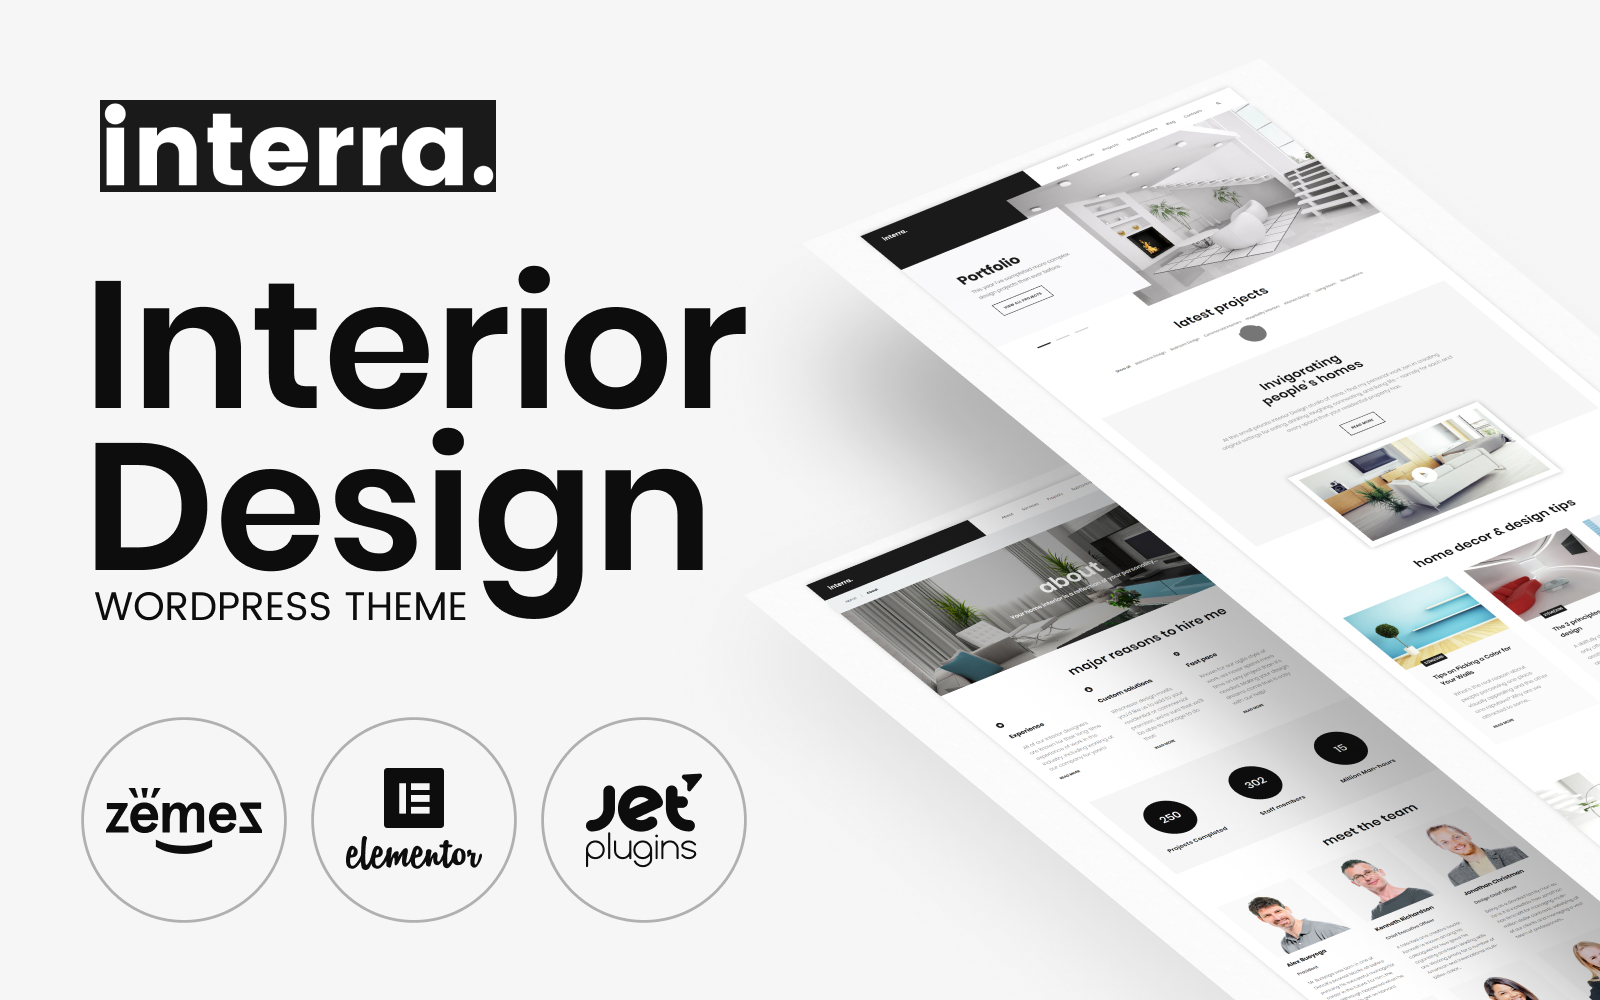 Interra - Interior Designer Portfolio WordPress Theme